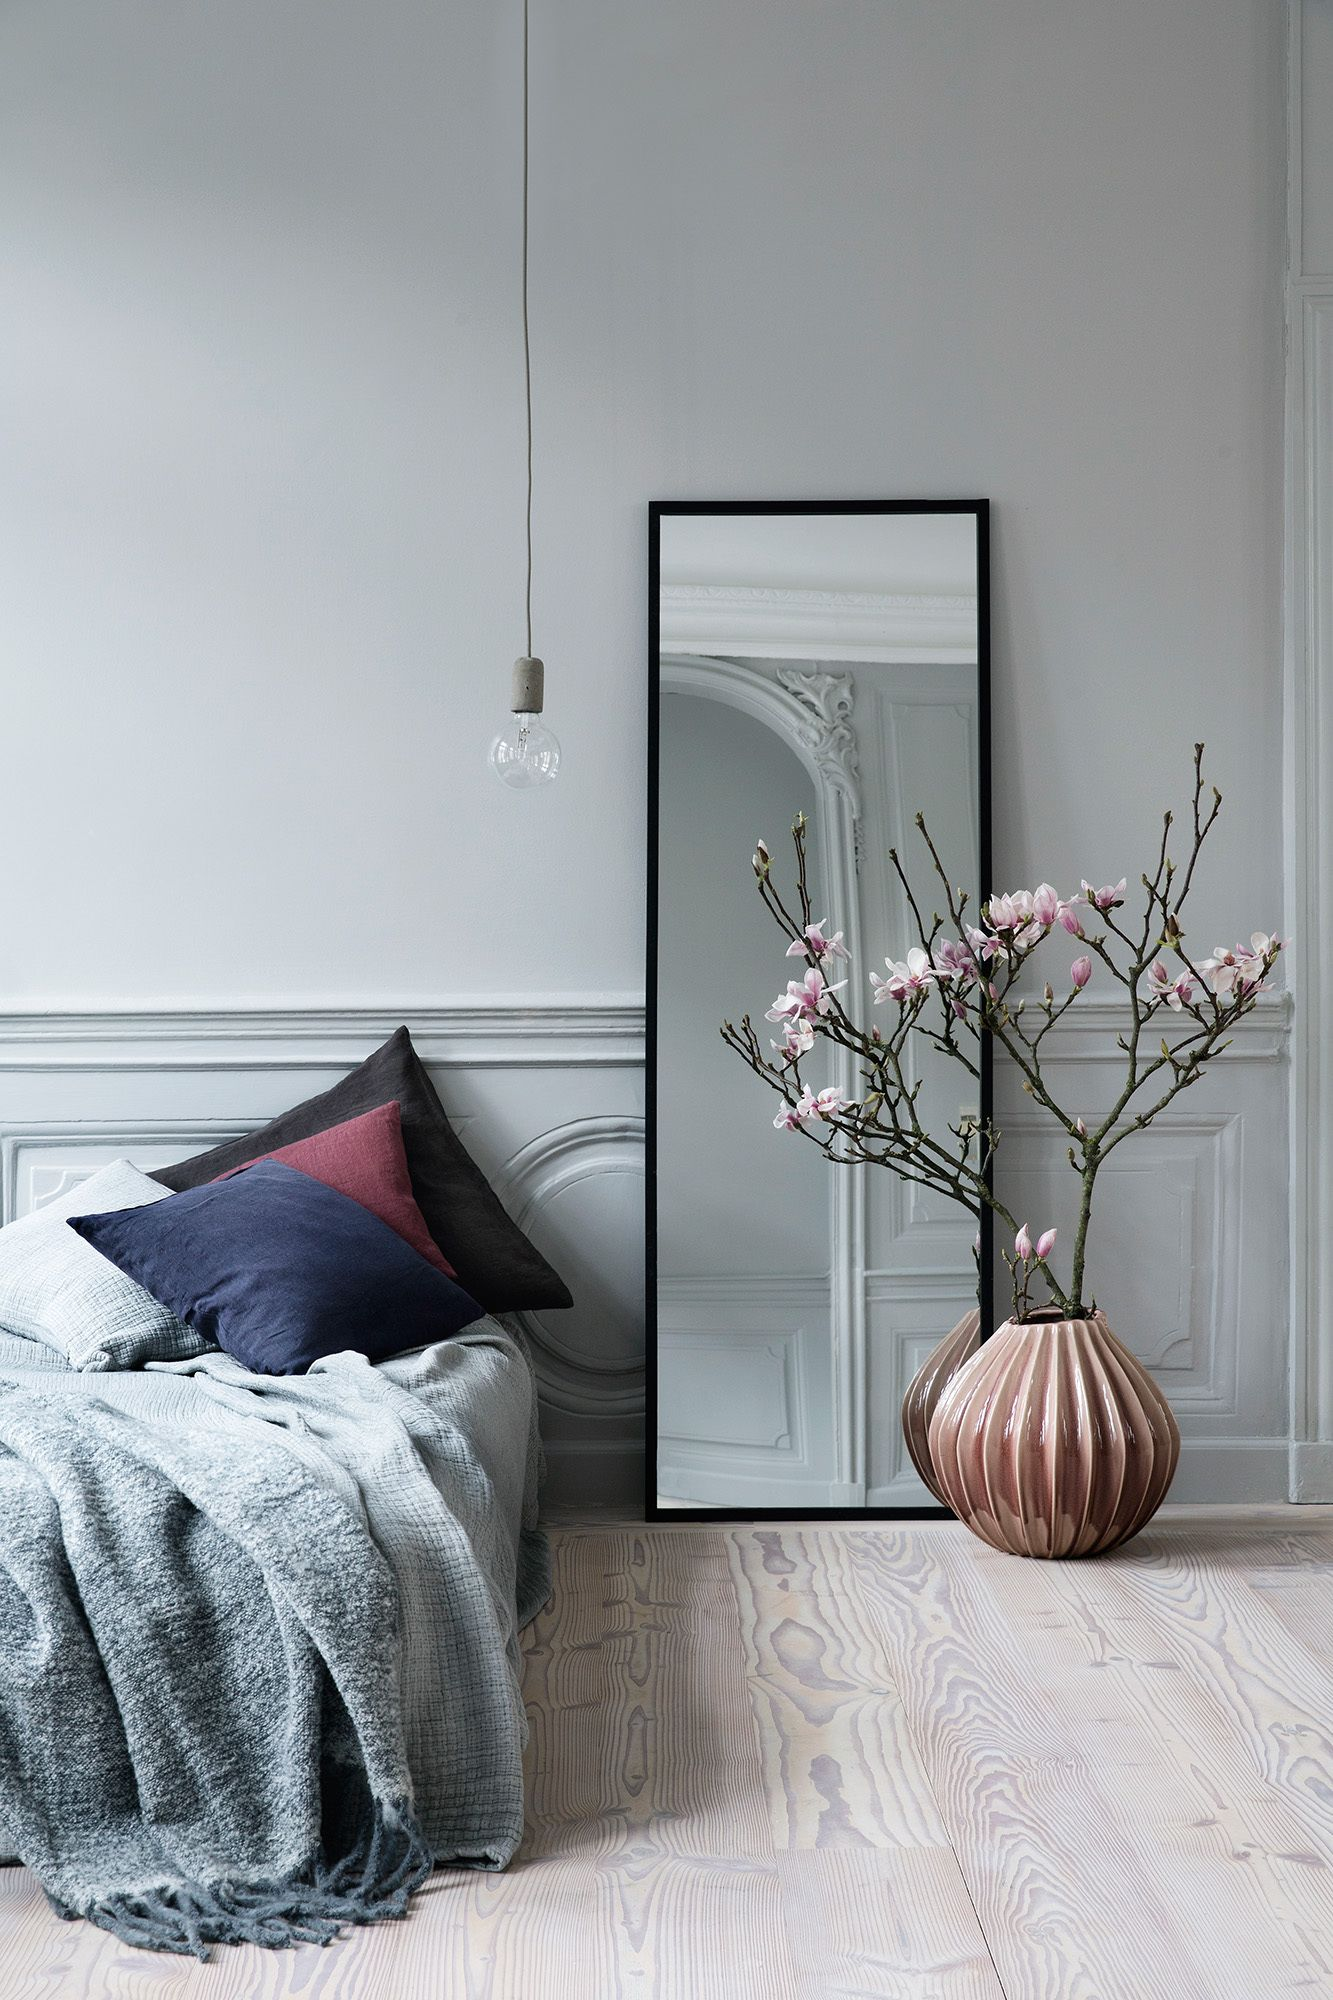 10 Bedroom Mirrors That'll Make Your 2018 Absolutely Magical bedroom mirrors 10 Bedroom Mirrors That'll Make Your 2018 Absolutely Magical 10 Bedroom Mirrors Thatll Make Your 2018 Absolutely Magical 4